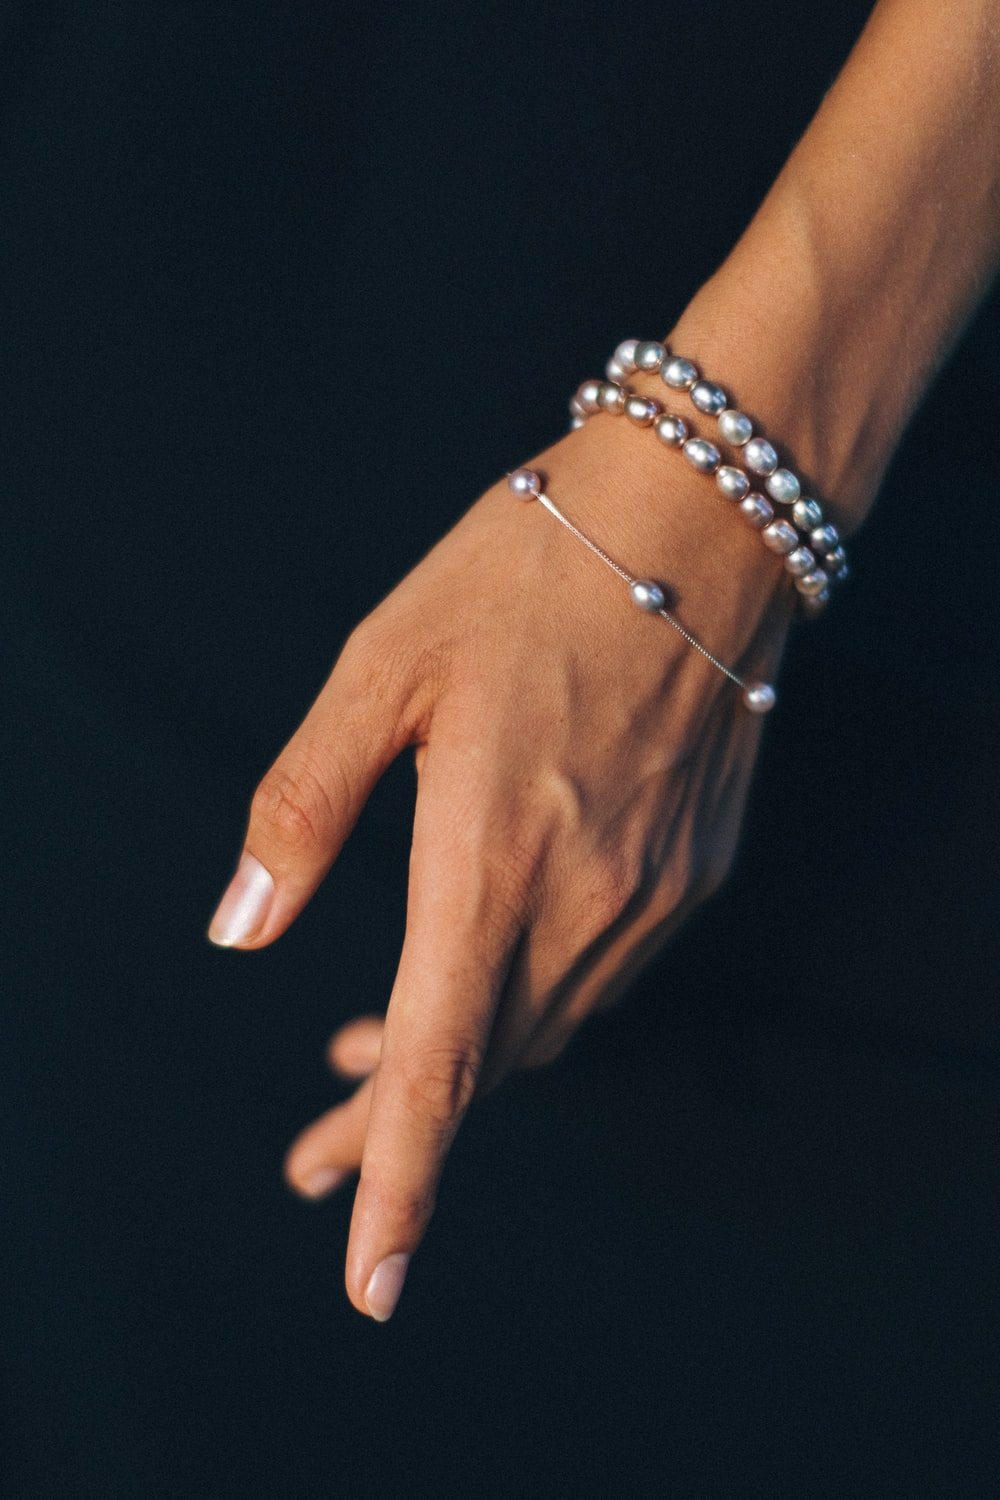 person wearing silver bracelet and gold ring